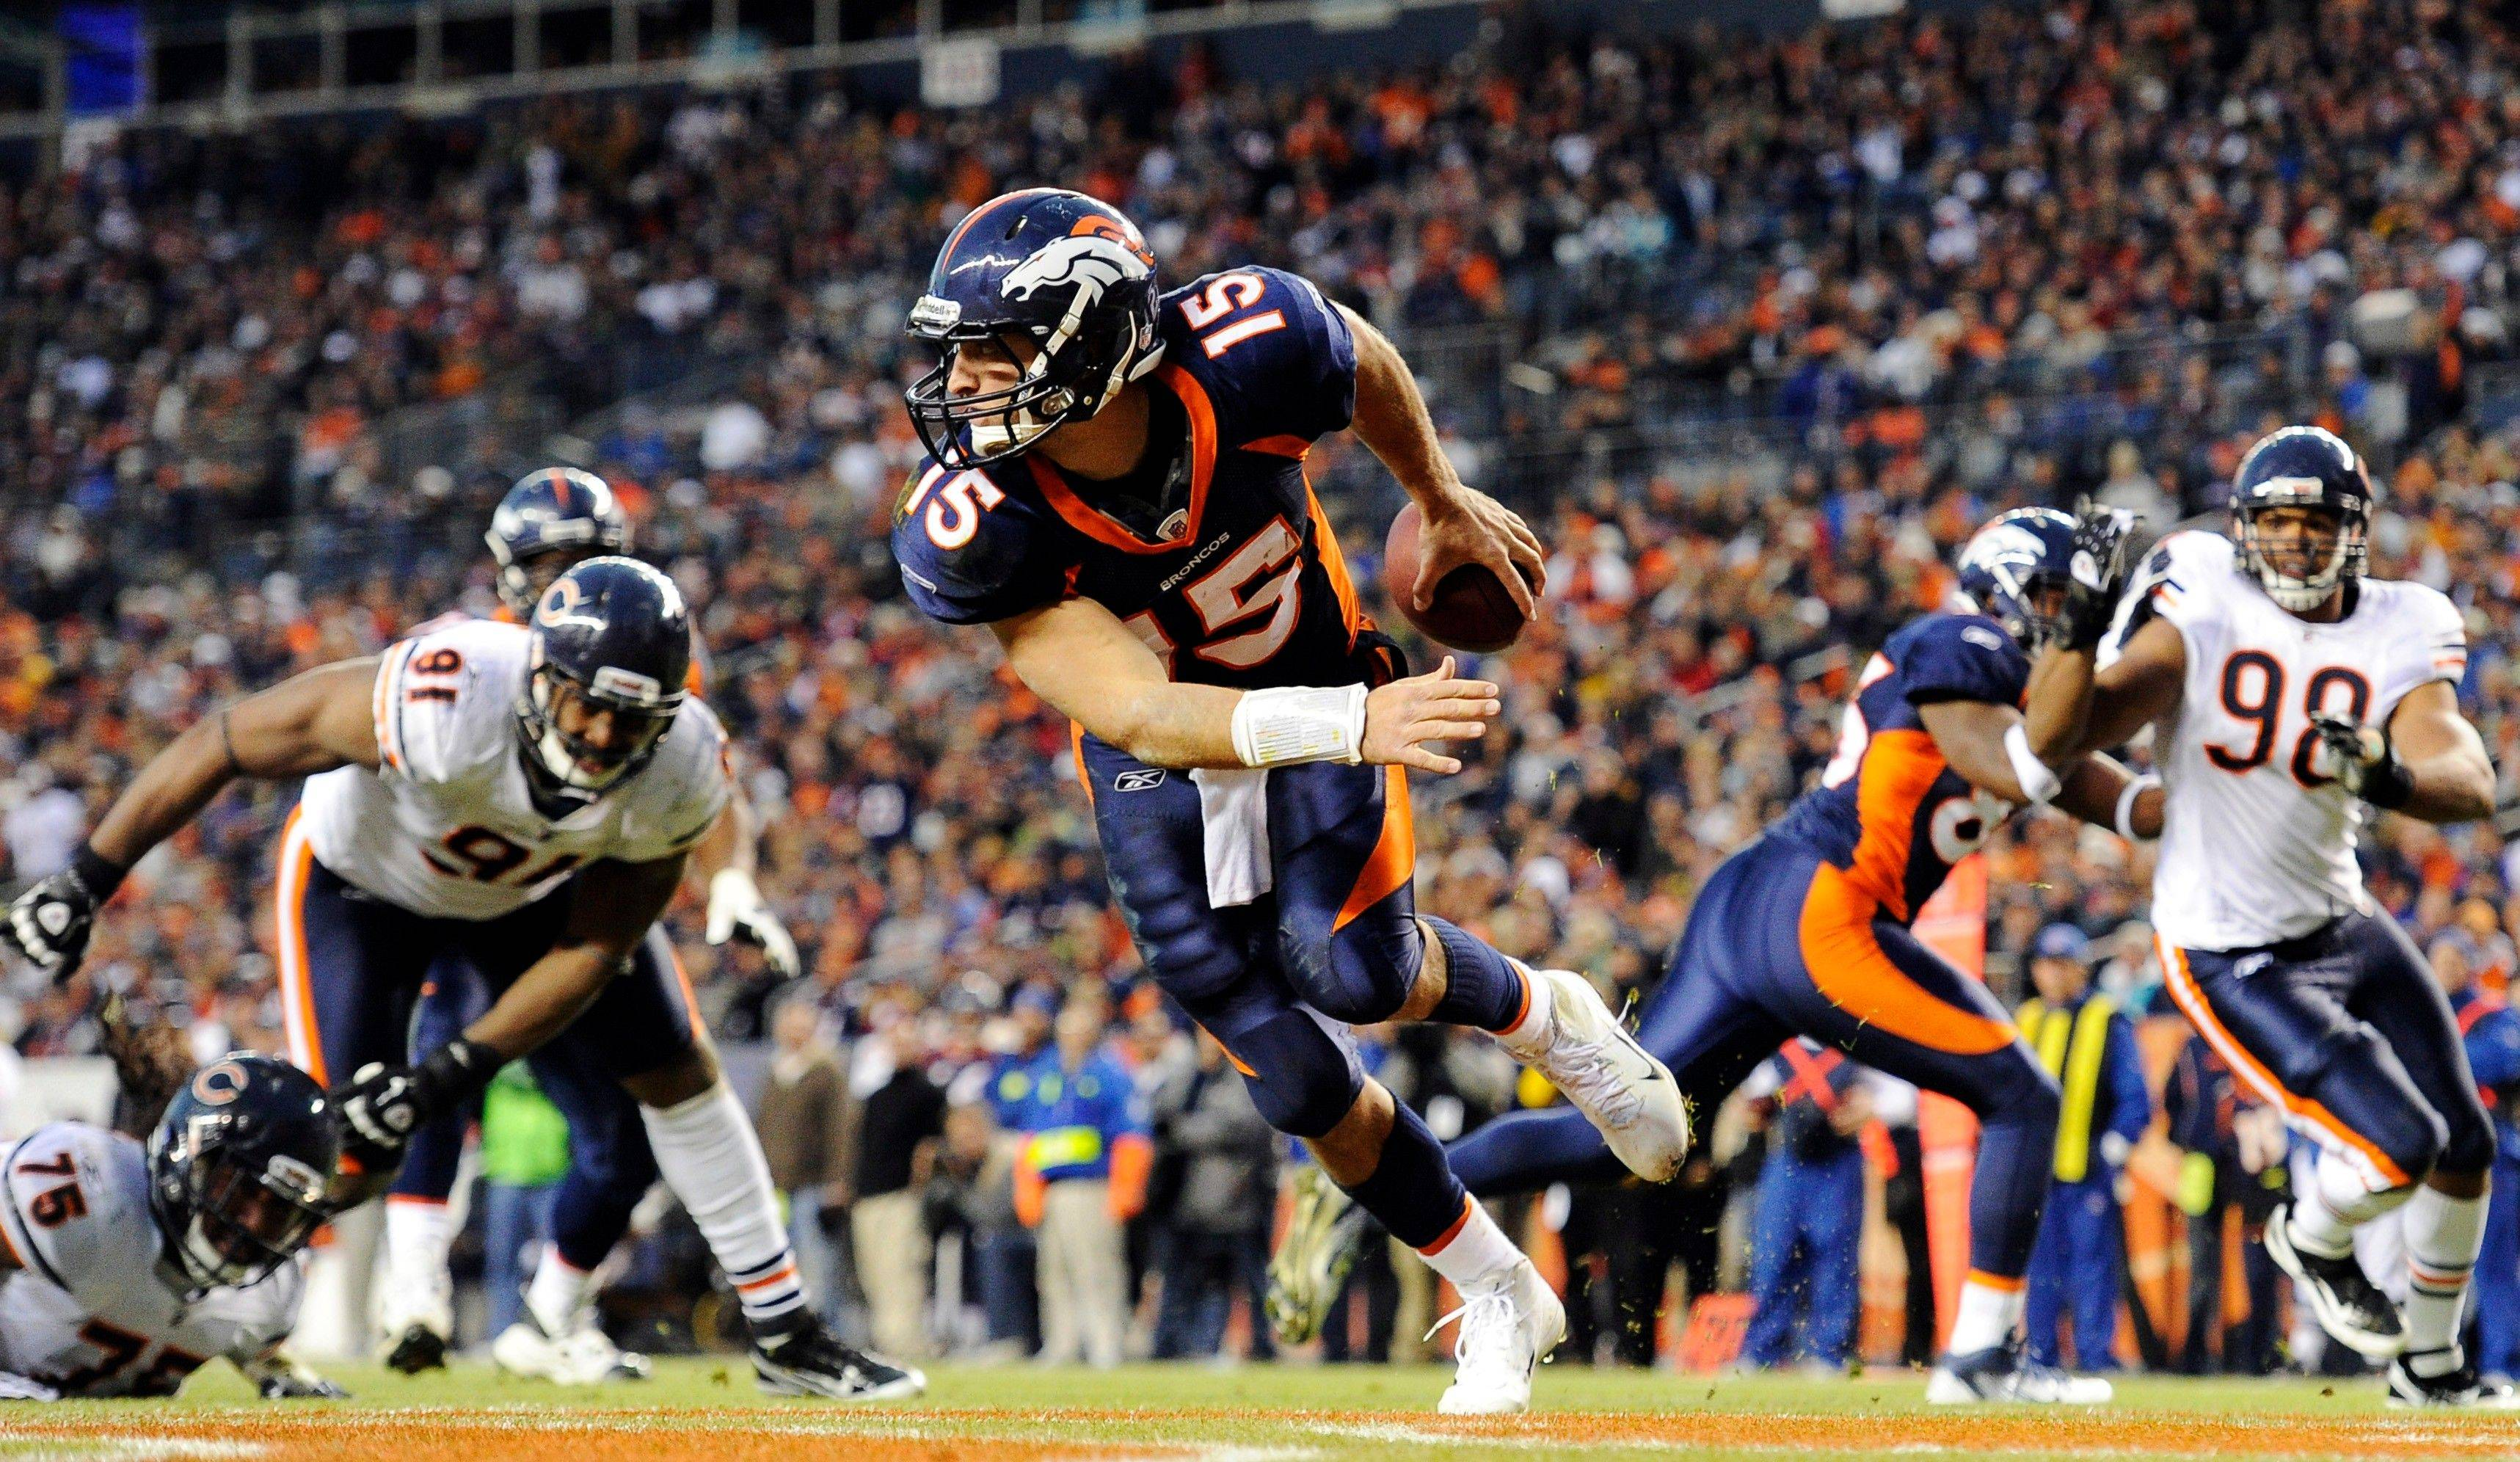 After struggling for three quarters, Denver Broncos quarterback Tim Tebow completed 18 of 24 passes for 191 yards and a touchdown in the fourth quarter and overtime.